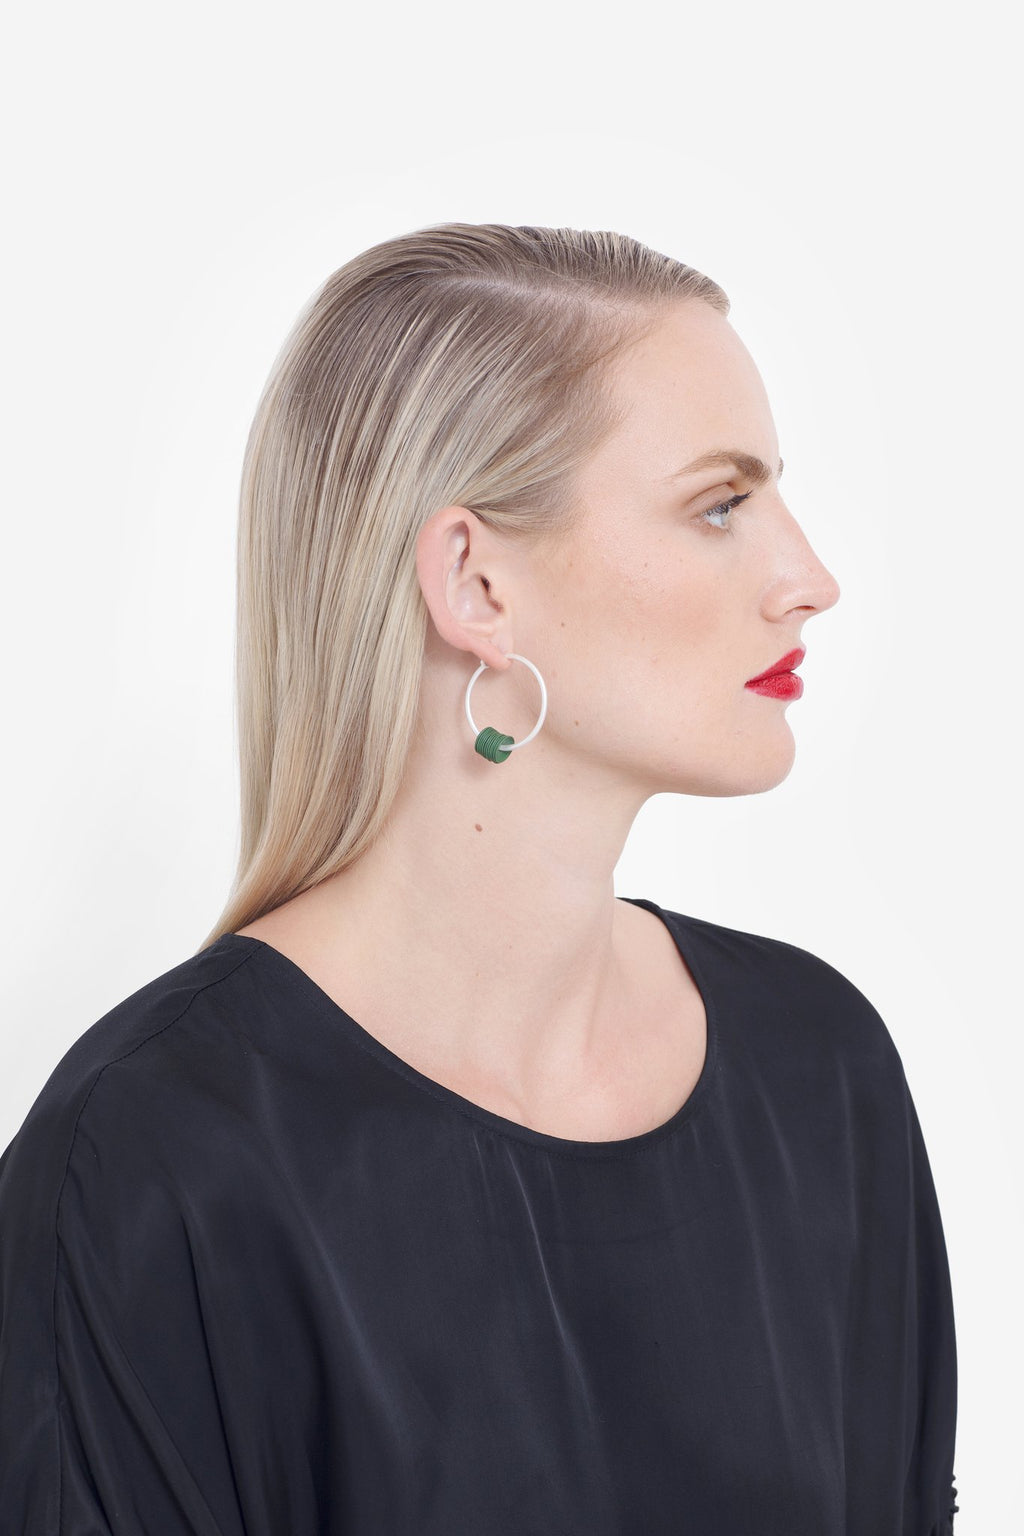 ELK The Label - Lerum Disc Earrings online at PAYA boutique